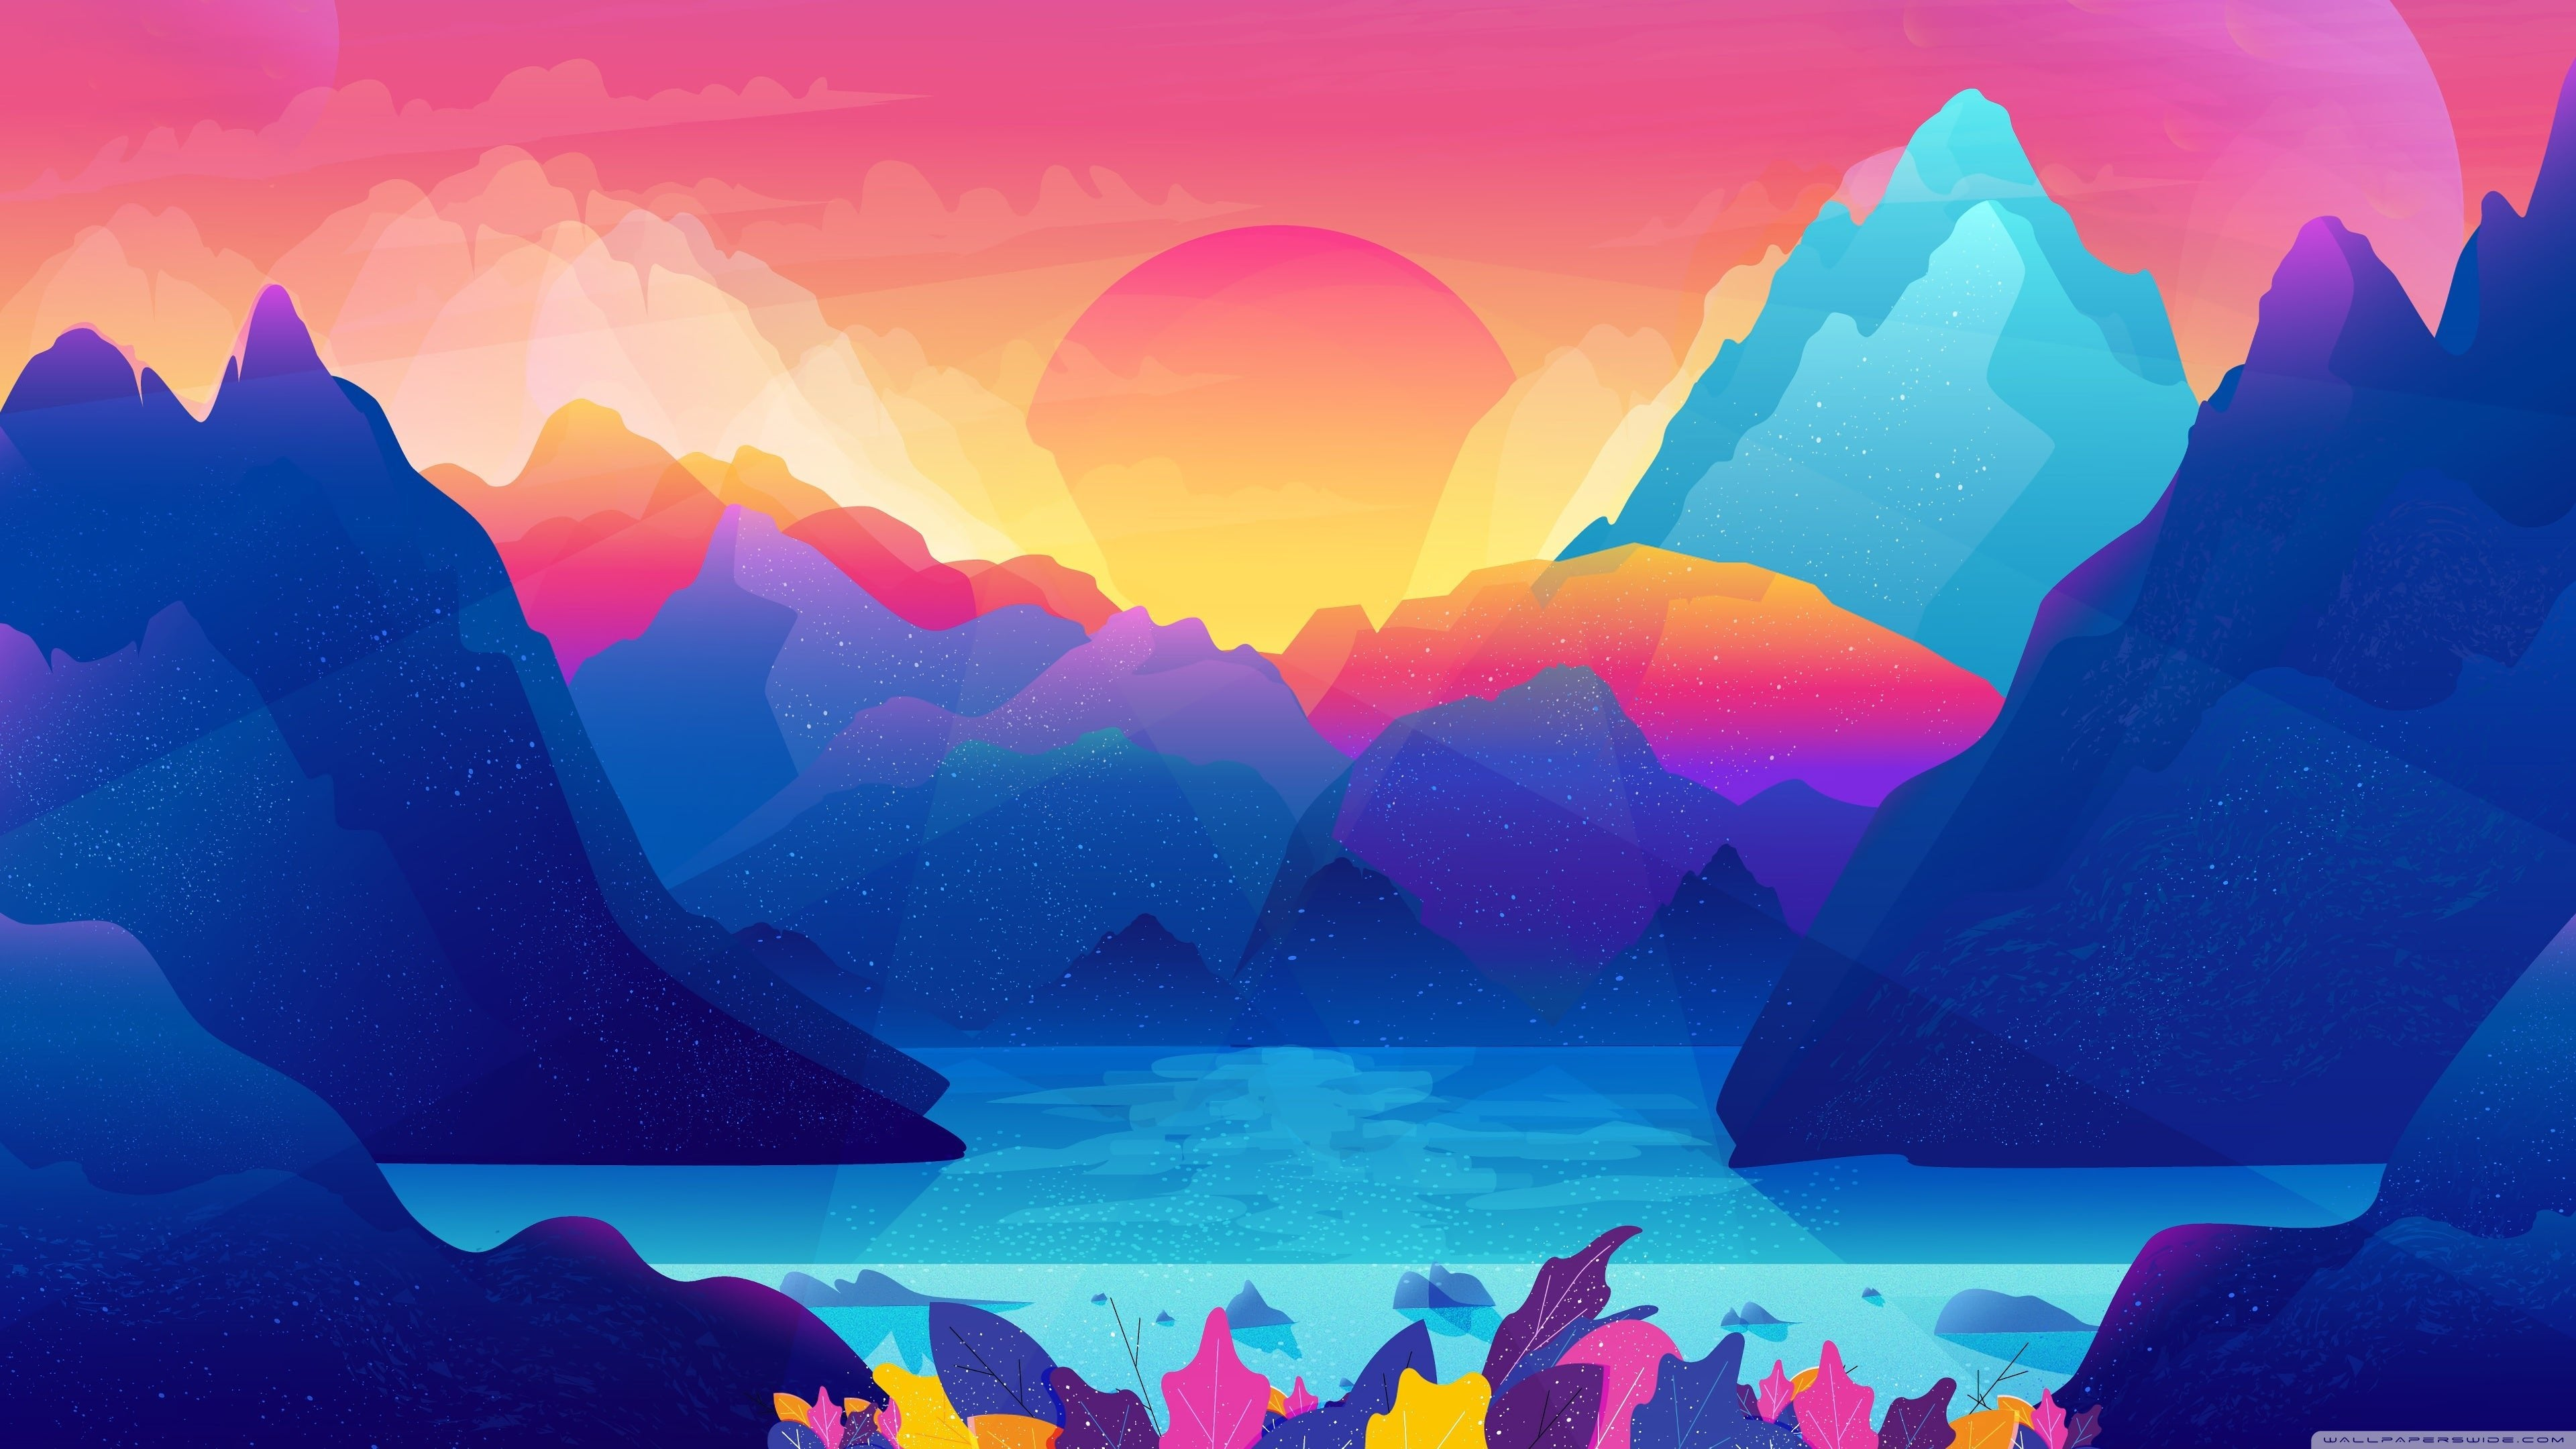 Animated Colorful Landscape 4k Wallpaper